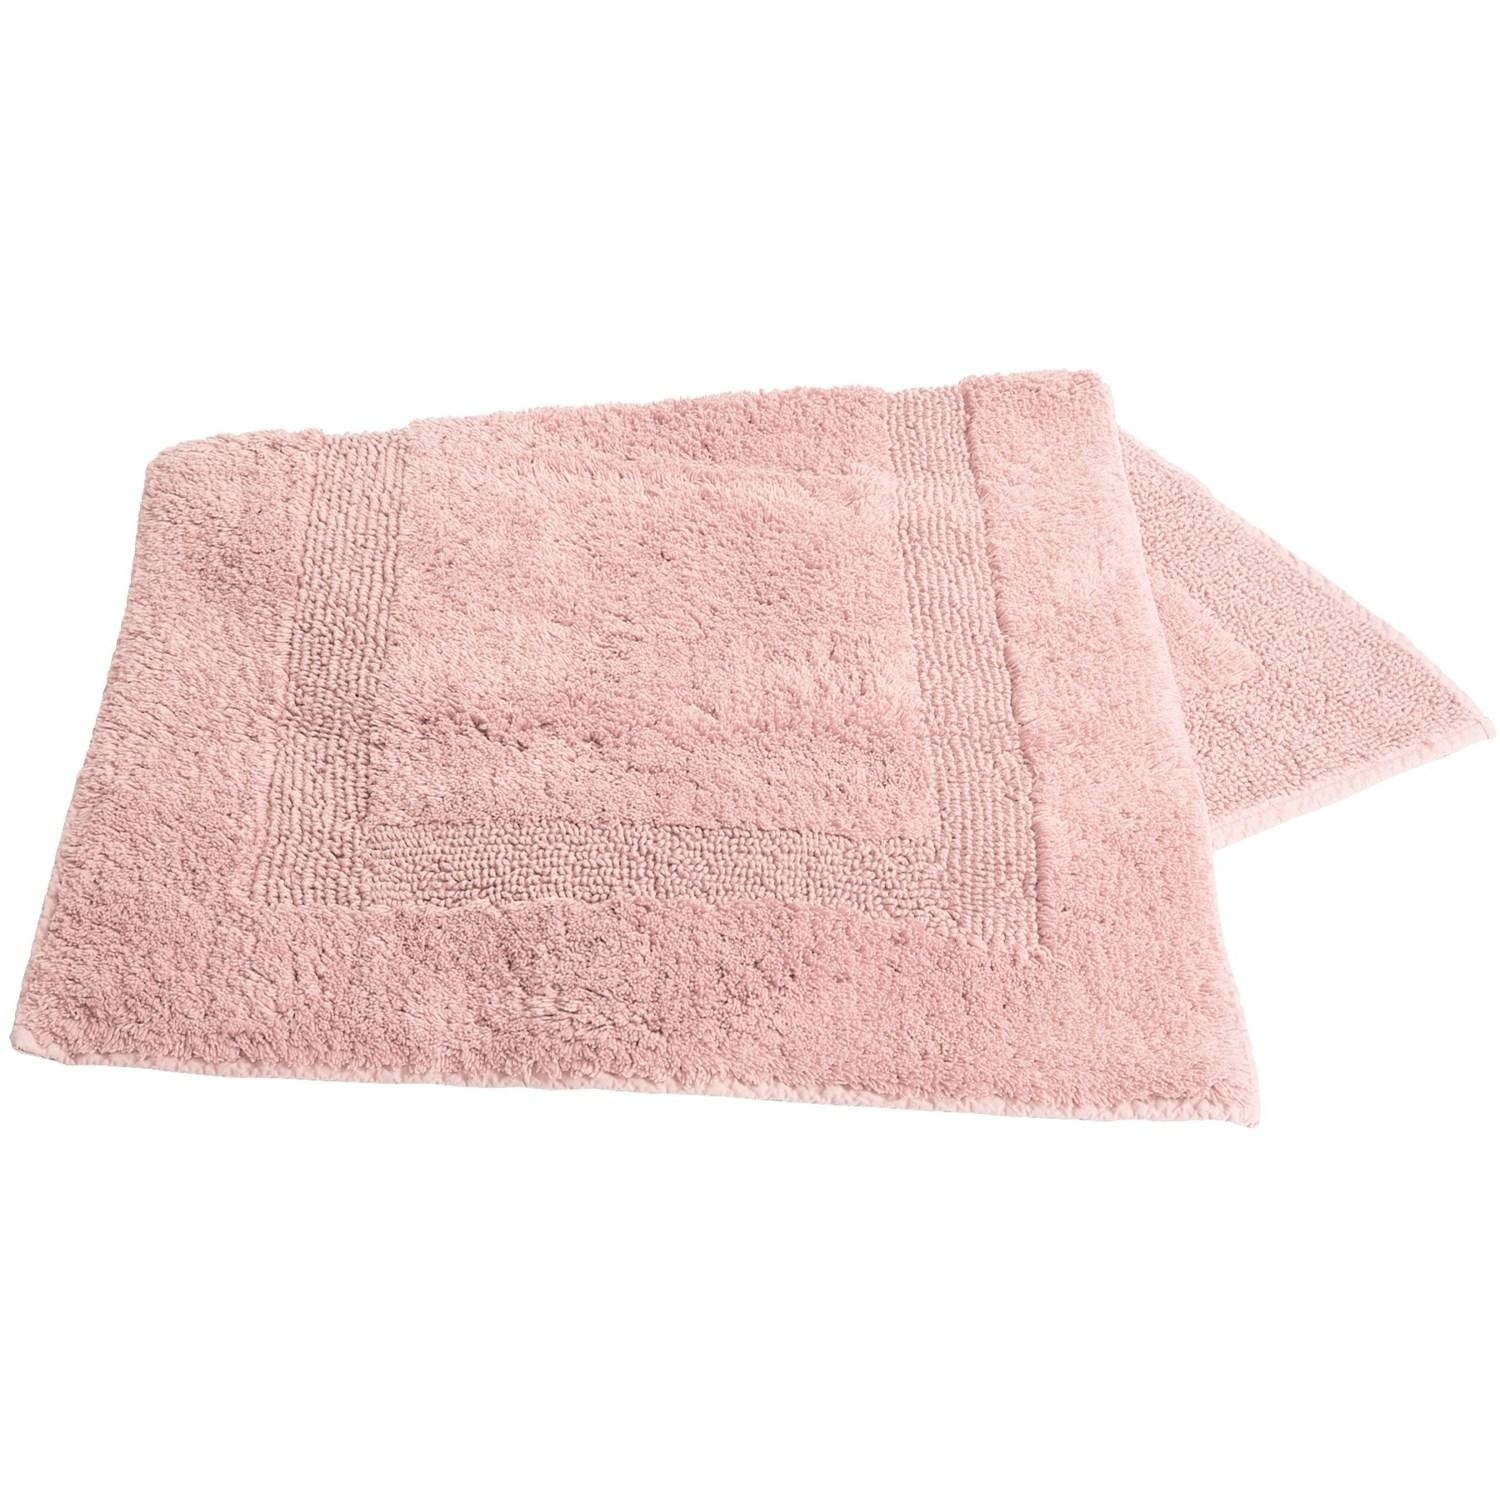 Baby Pink Bathroom Rugs